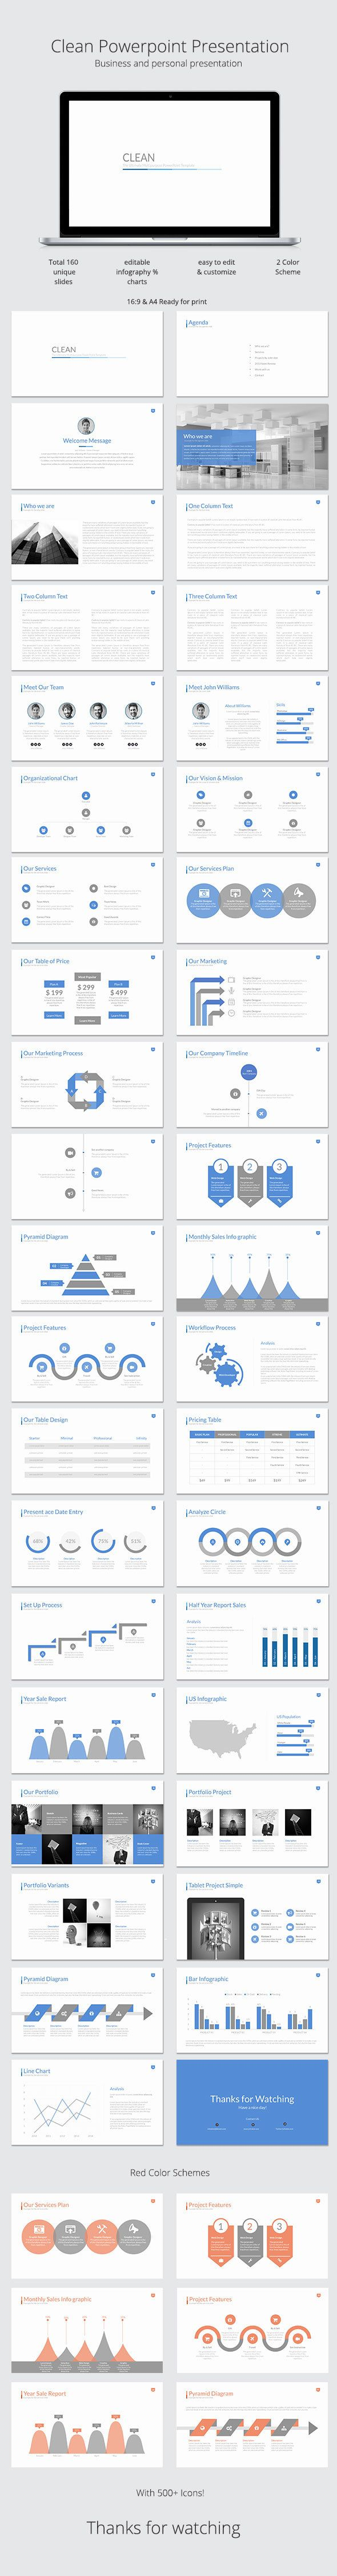 Clean Powerpoint Presentation Template #design #slides Download…